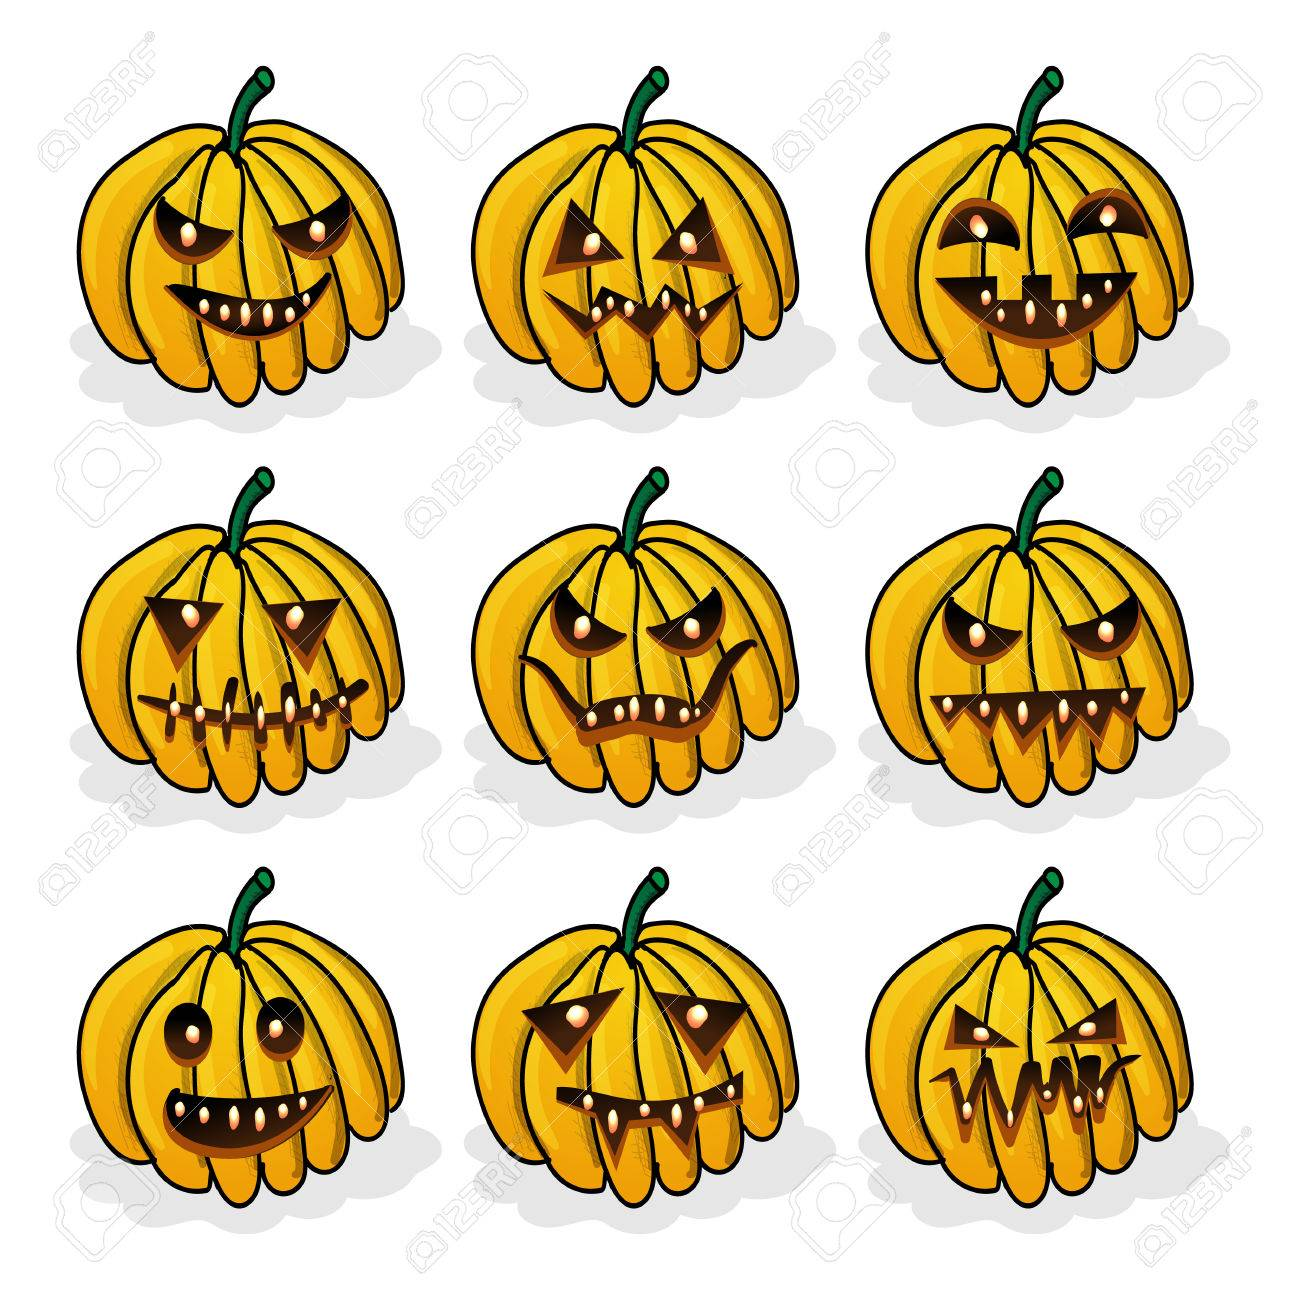 vector icons set with scary faces of halloween pumpkin. emotion